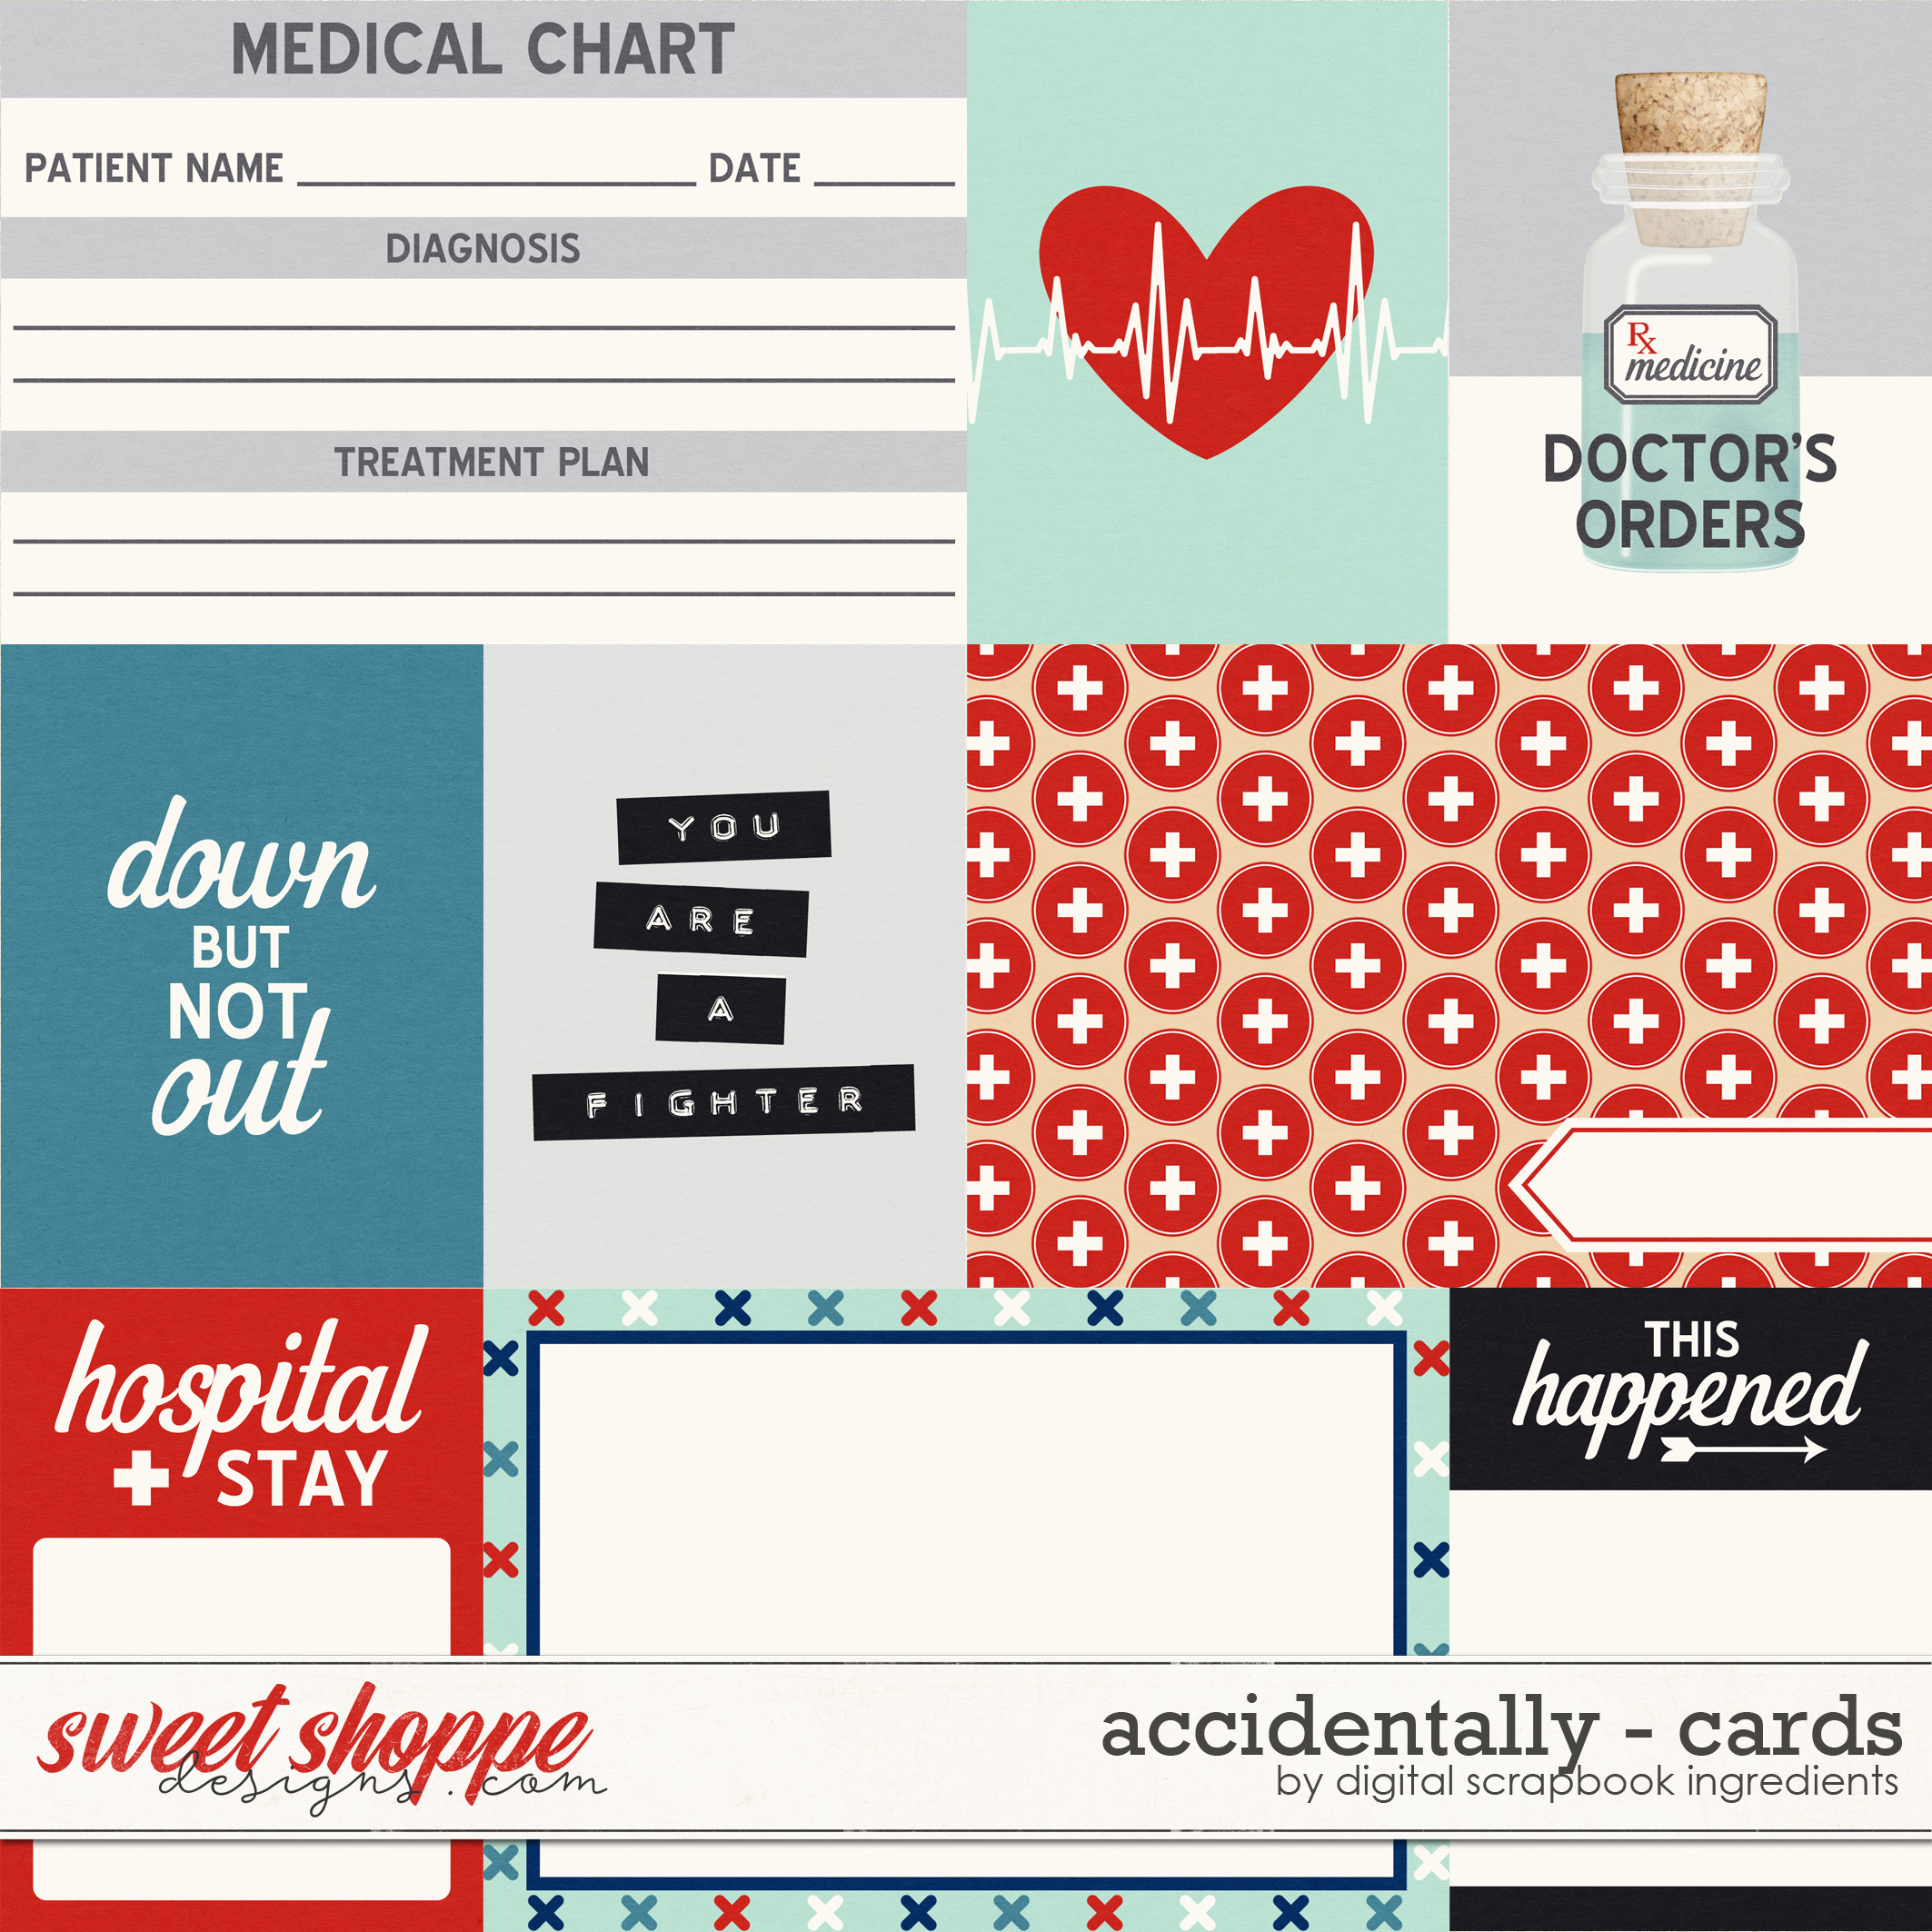 Accidentally | Cards by Digital Scrapbook Ingredients